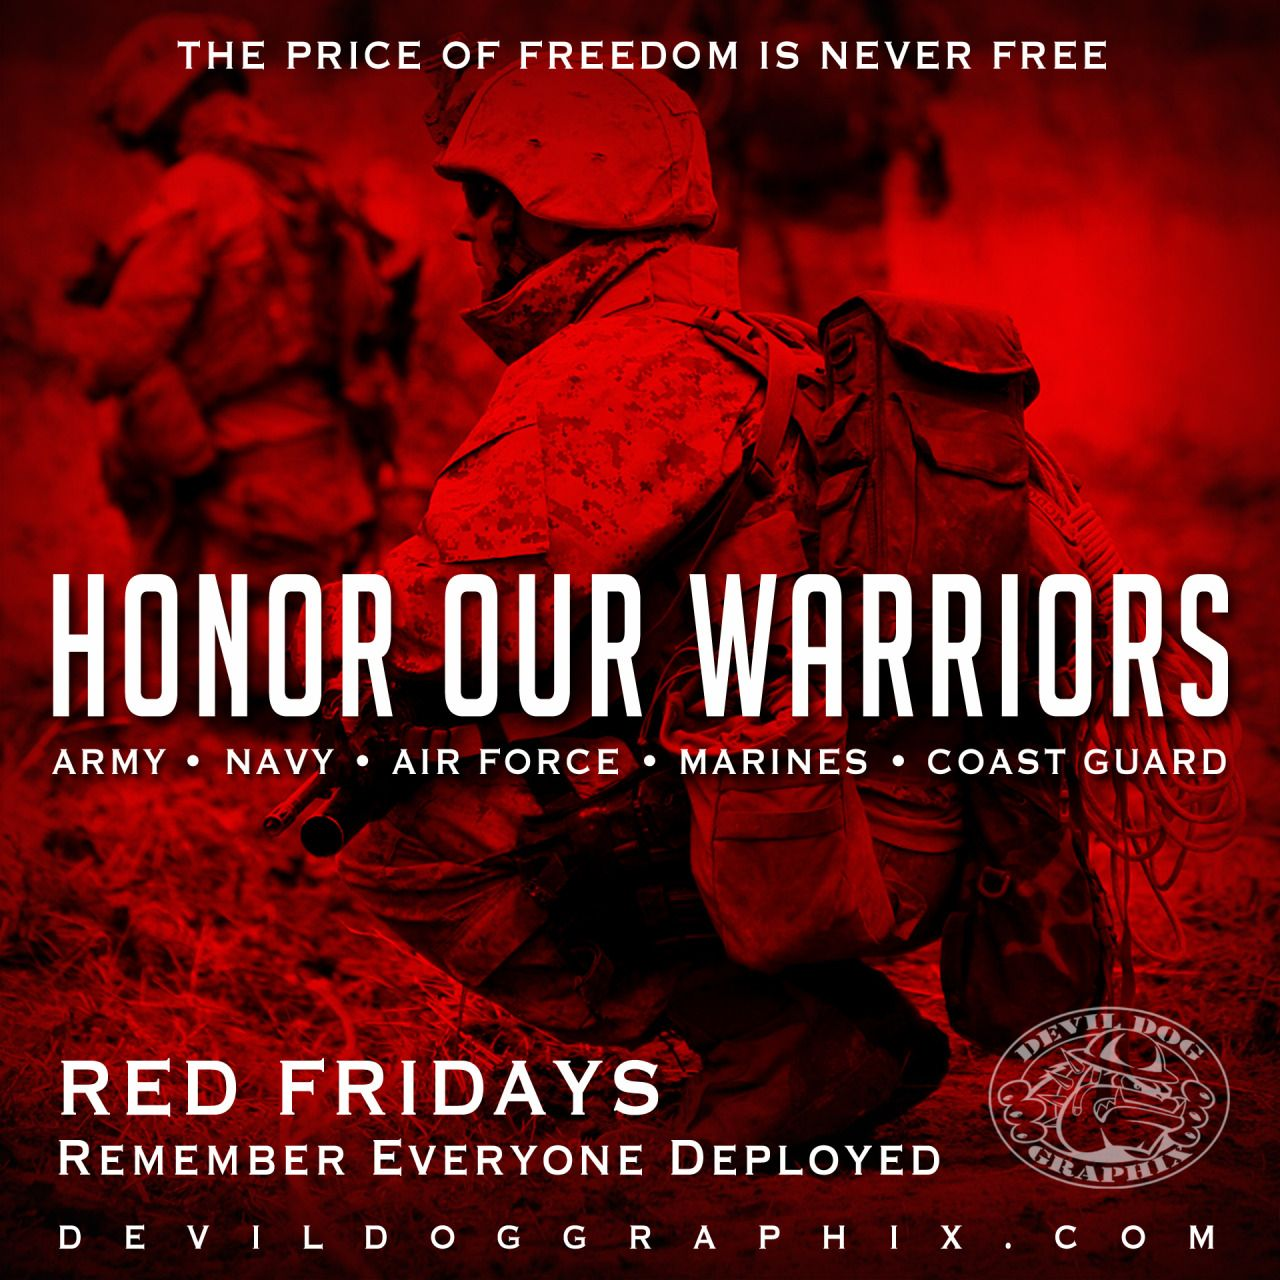 It's RED Friday! Remember Everyone Deployed! Rah!http